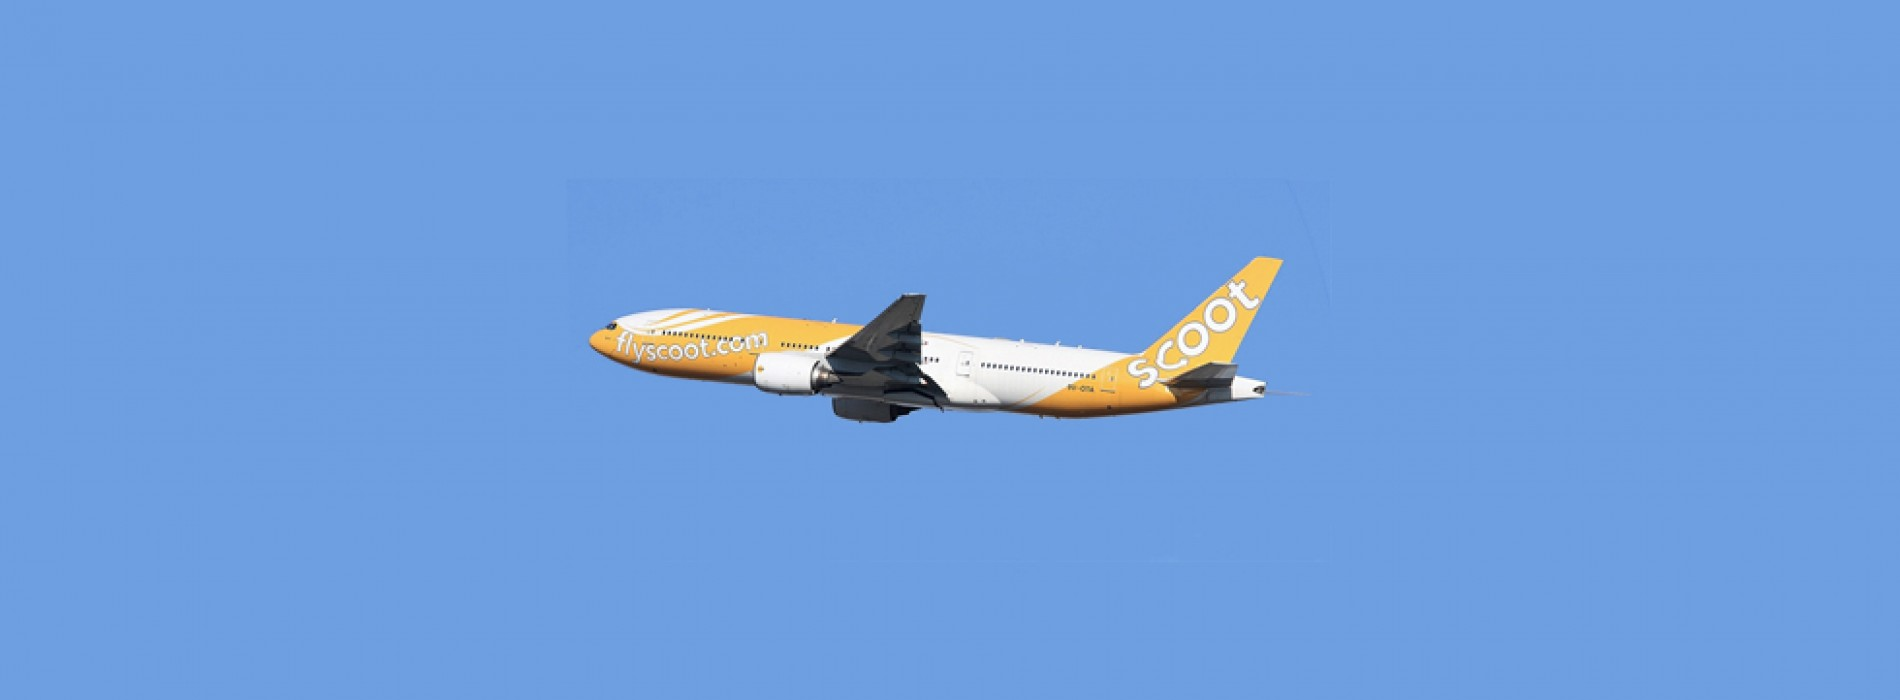 No plans to operate India-Europe long haul flights says Scoot Airlines